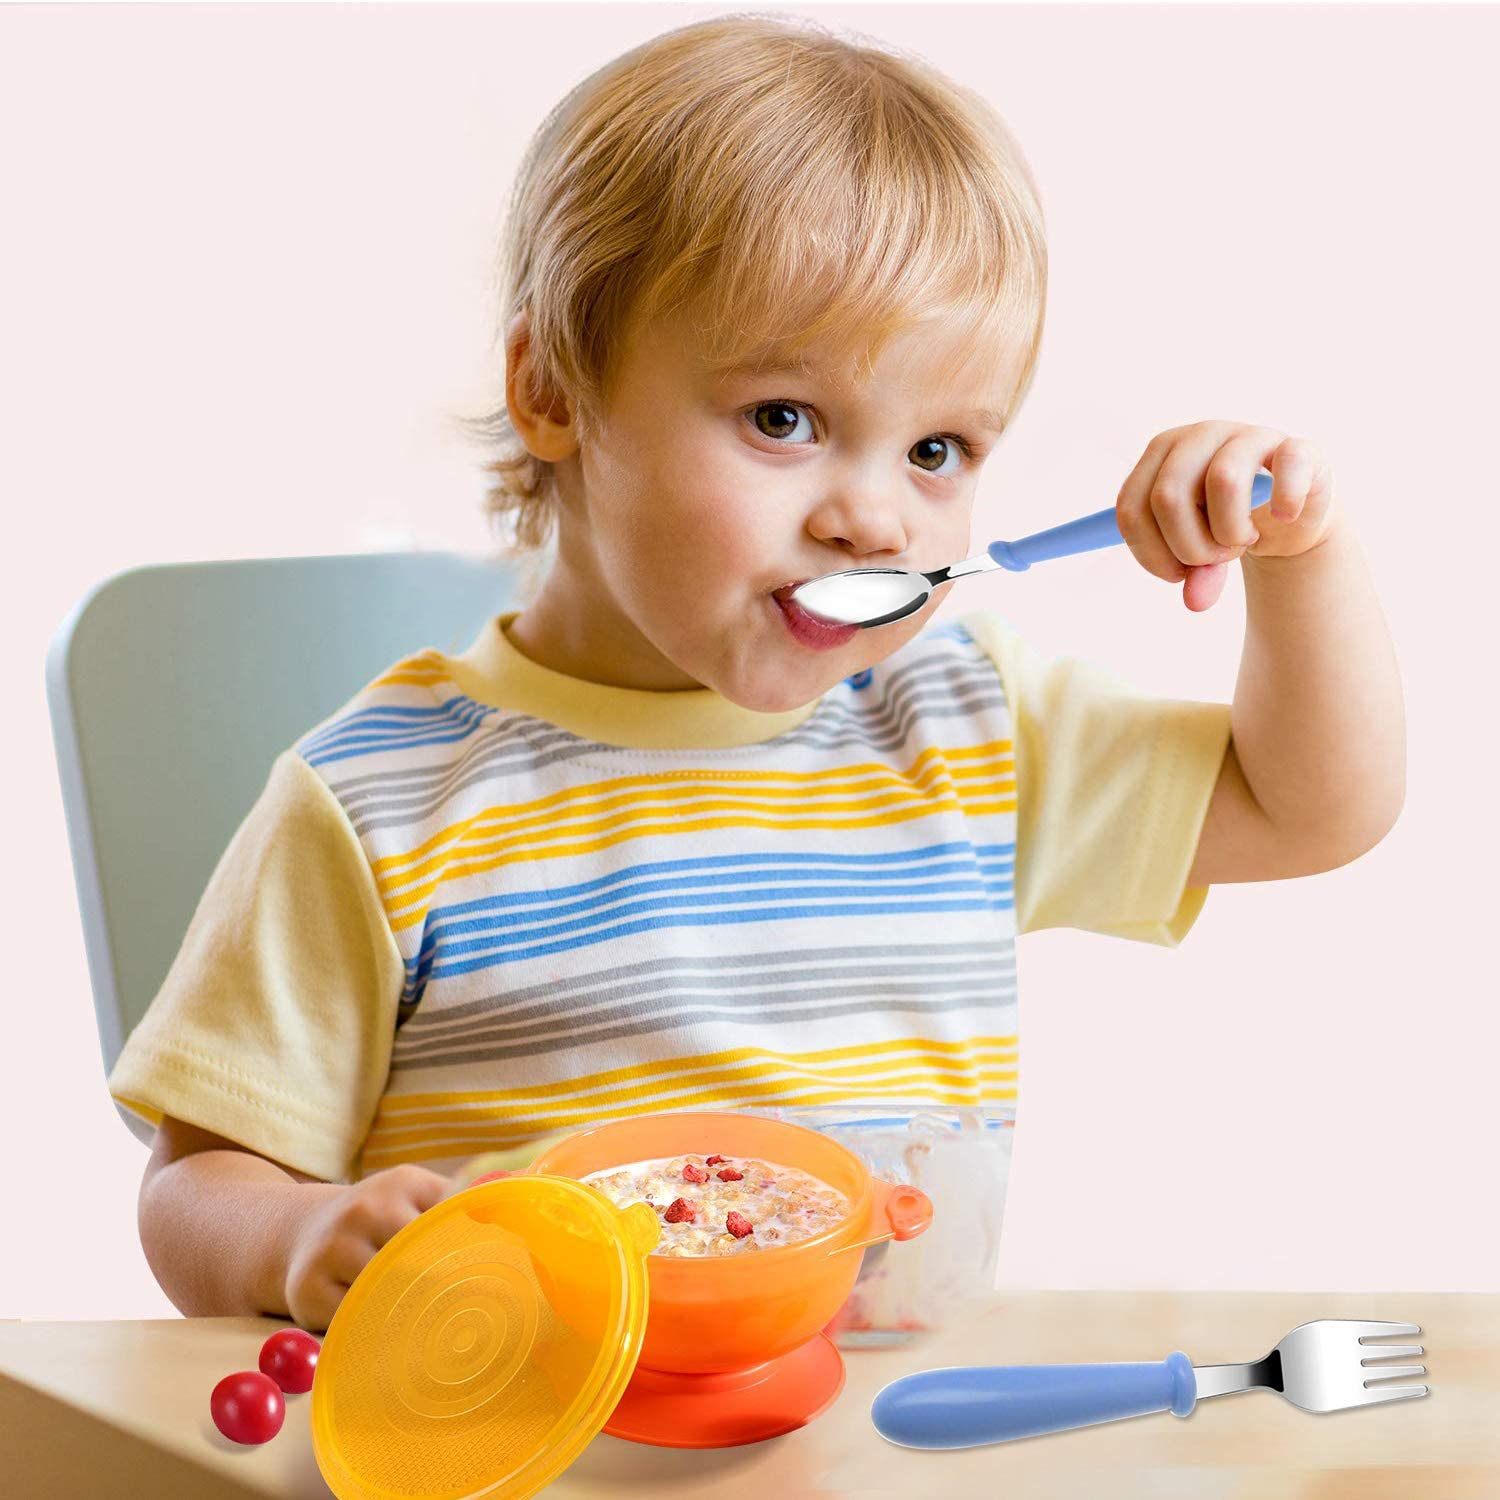 Baby Cutlery Spoon and Fork Set for Weaning and Learning to Use Cutlery Baby Fork and Spoon 3 Set Toddler Utensils Spoons Forks Tableware Set with Travel Case for Kids Self-Feeding